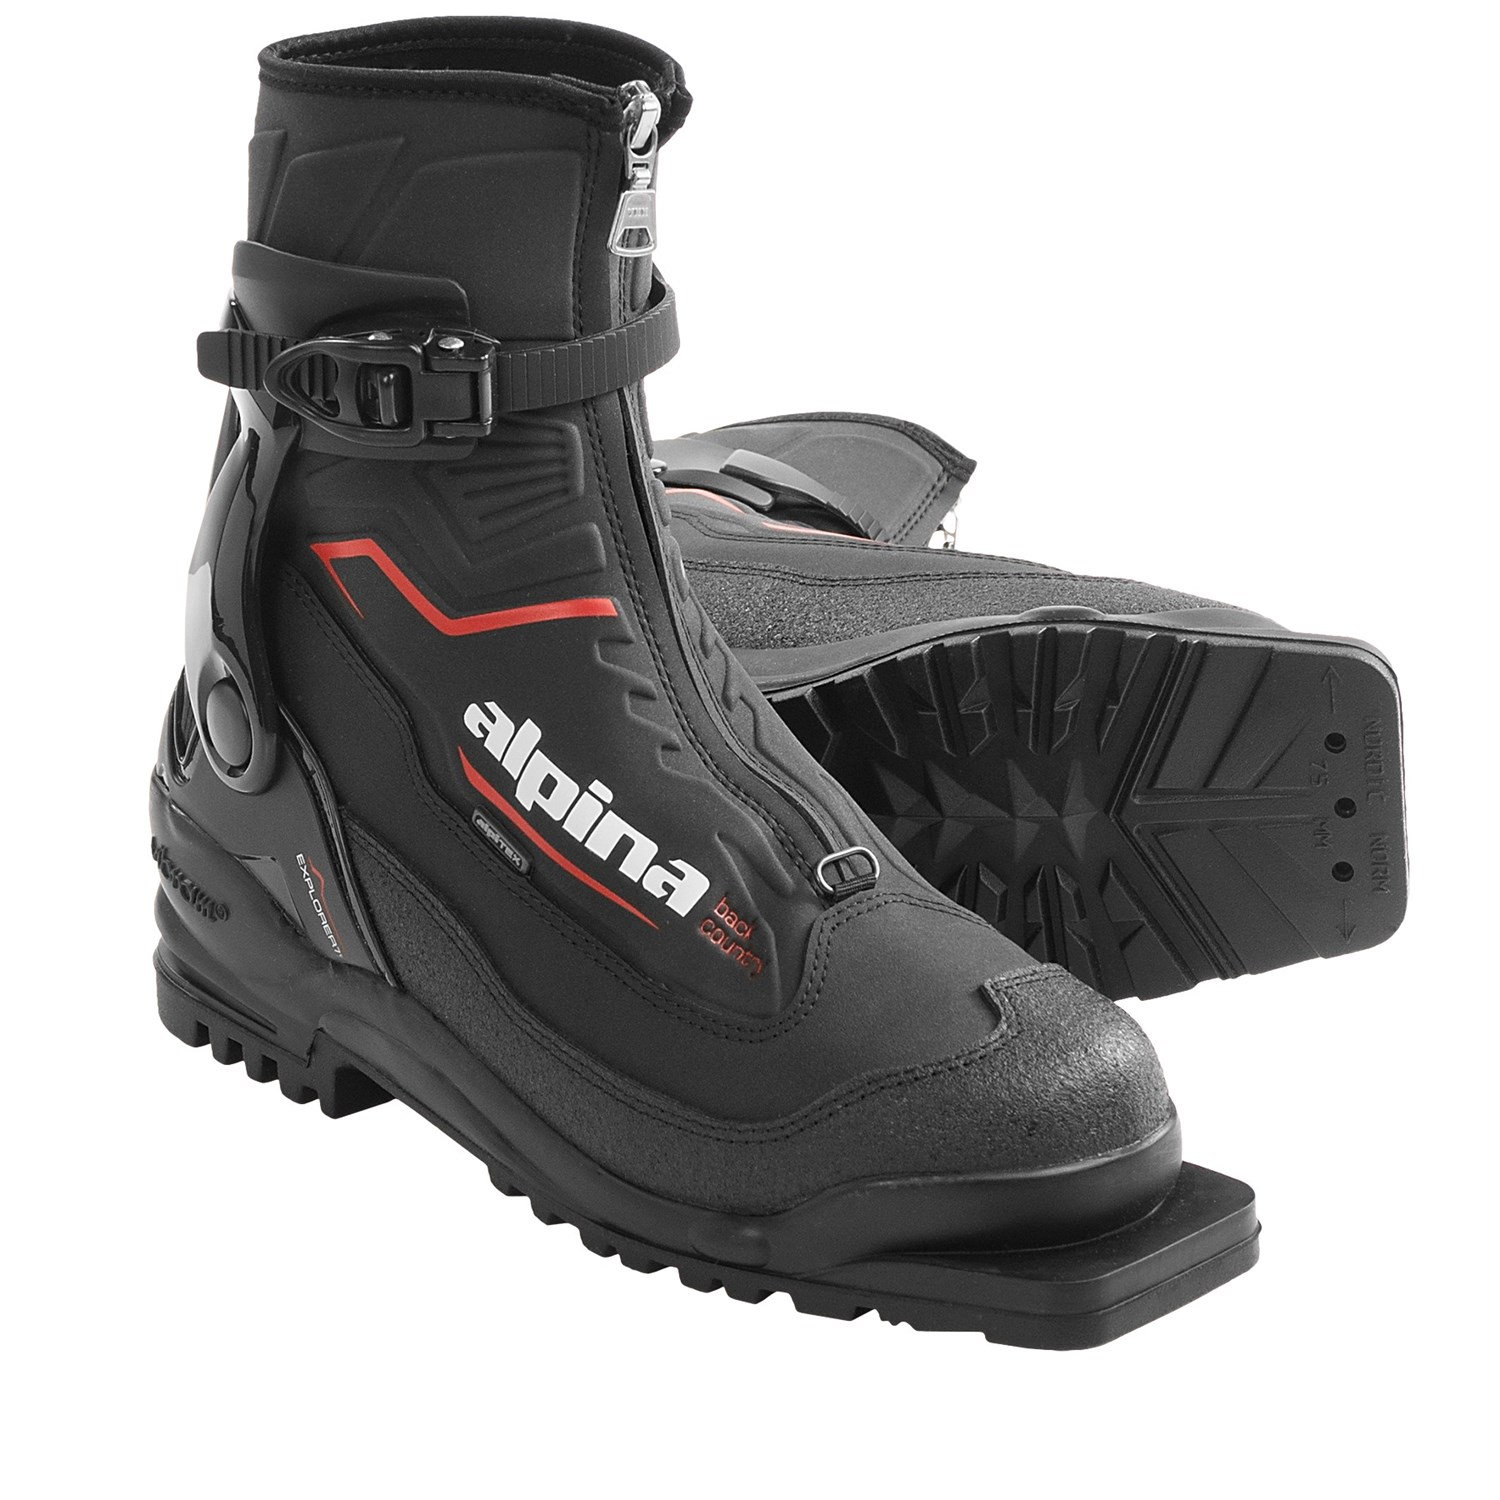 Alpina Explorer Nordic Touring Boots CLOSEOUT Moab Gear Trader - Alpina backcountry boots